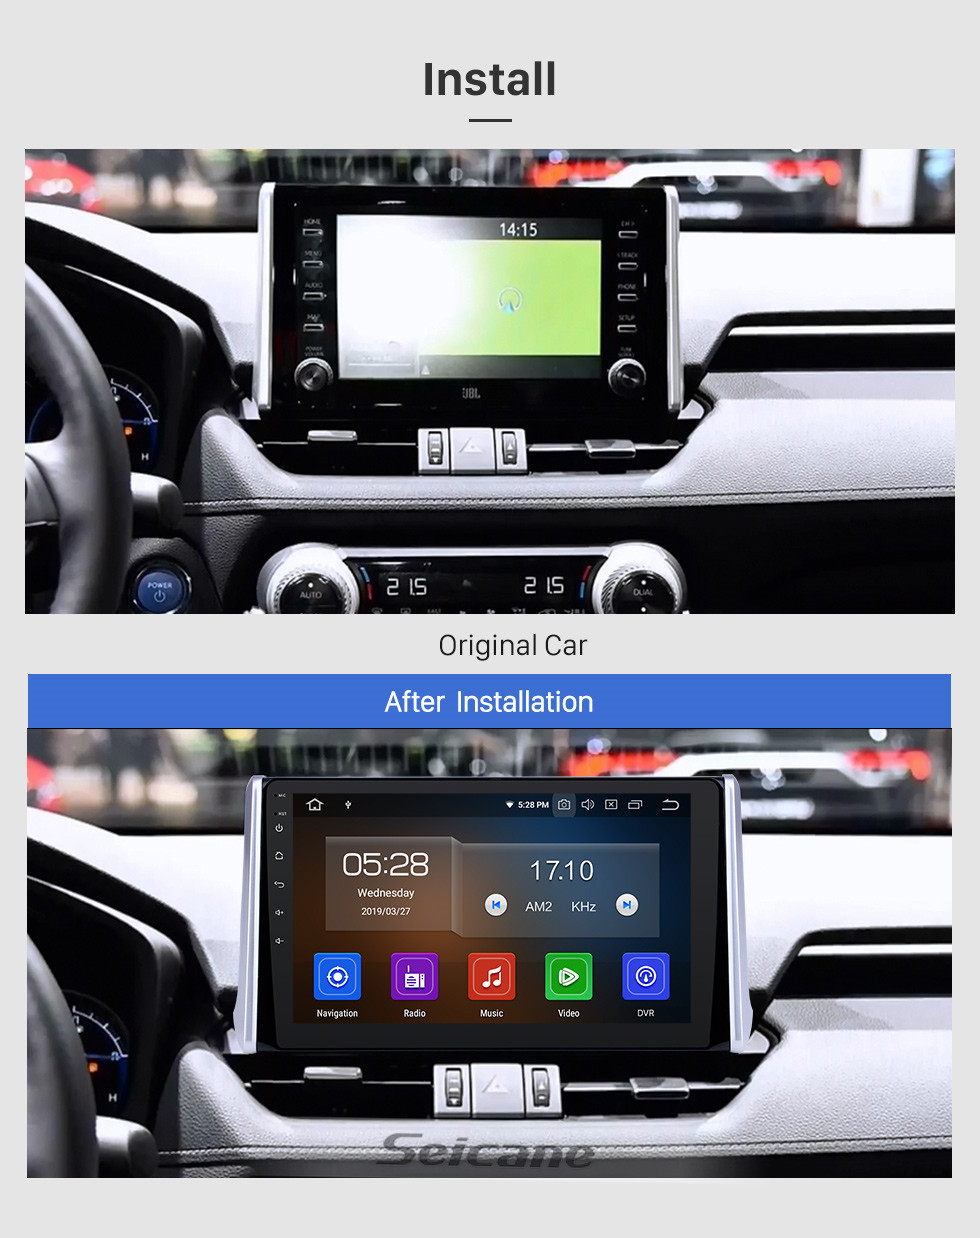 Seicane 10.1 inch Android 9.0 GPS Navigation Radio for 2019 Toyota RAV4 with HD Touchscreen Carplay Bluetooth WIFI USB AUX support Mirror Link OBD2 SWC